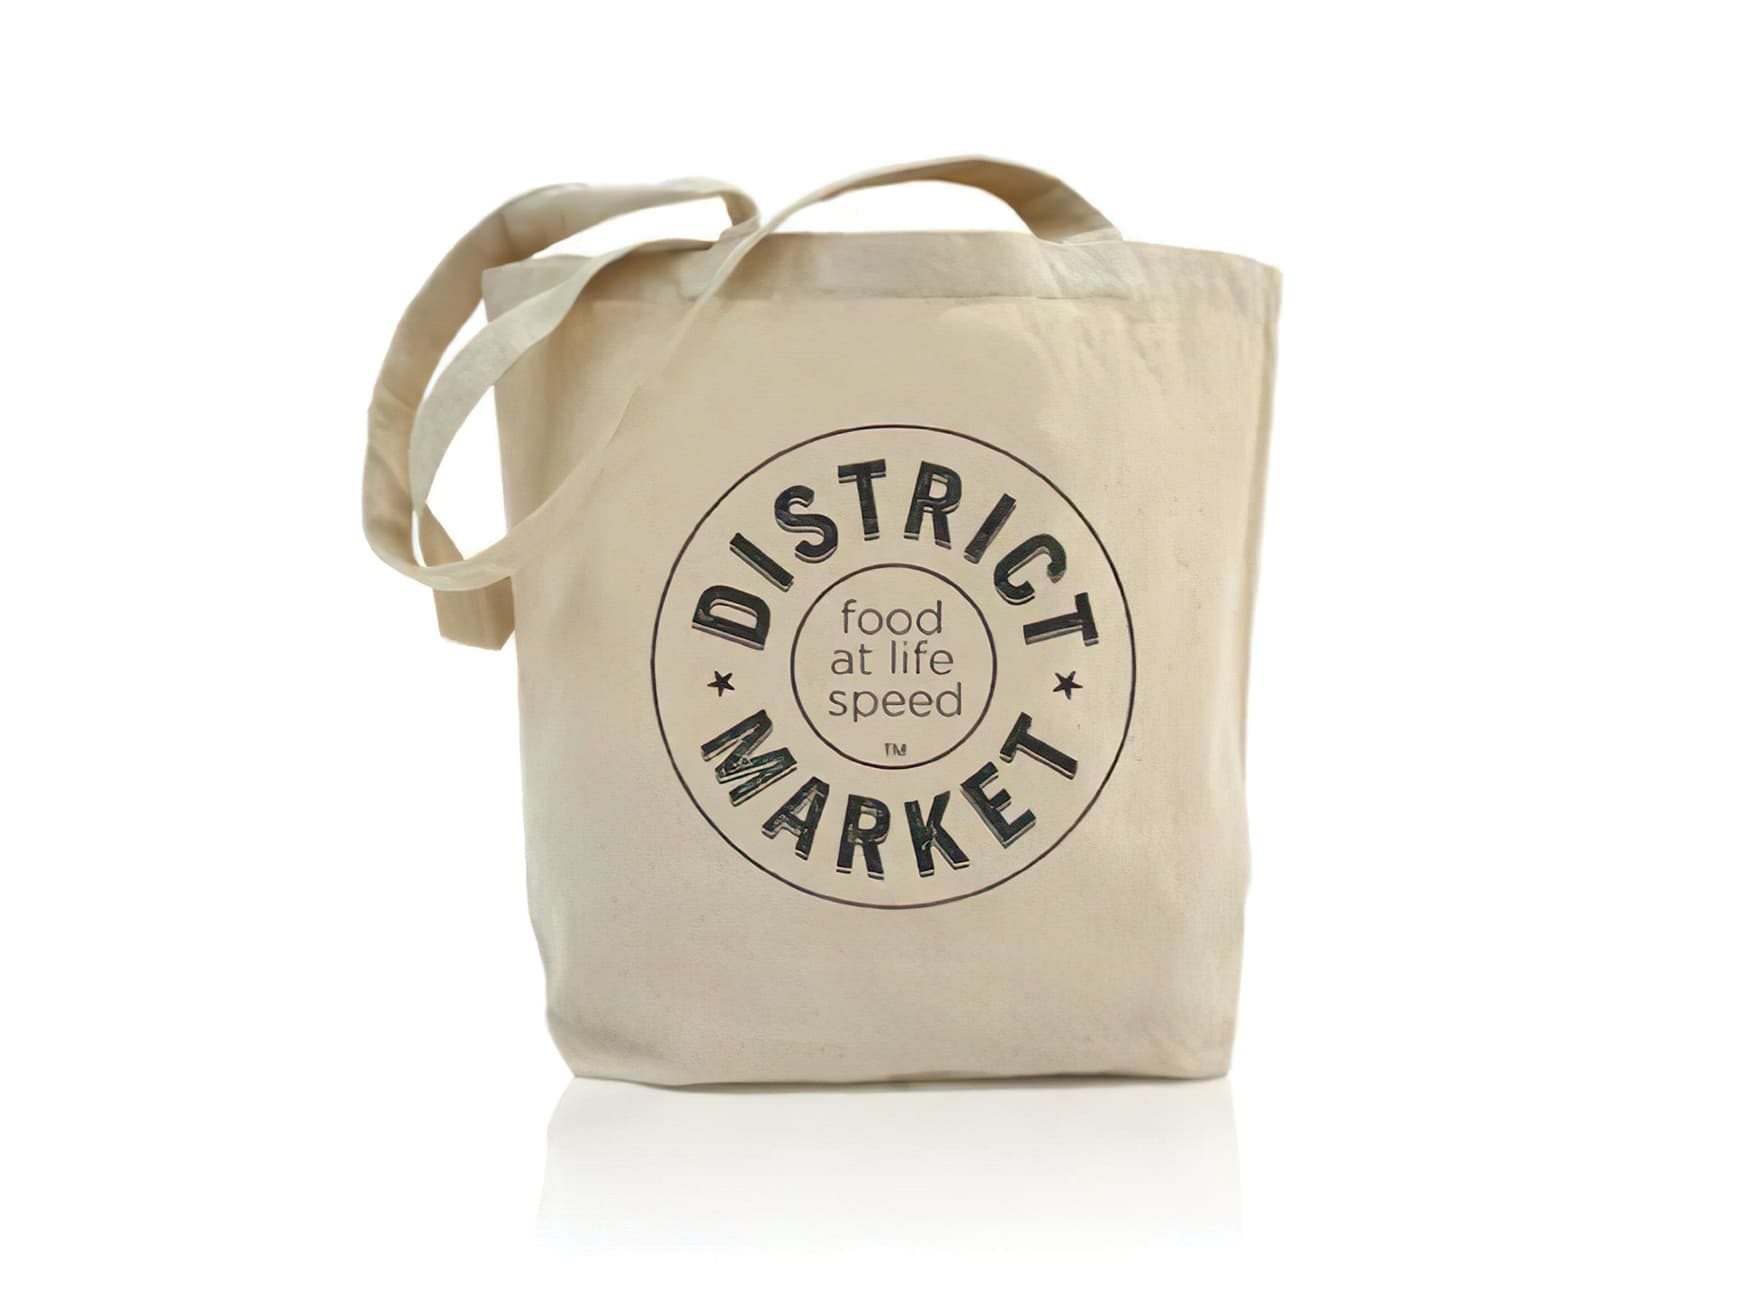 District Market, a student market located by the University of Washington's campus. Branding and Logo Design.